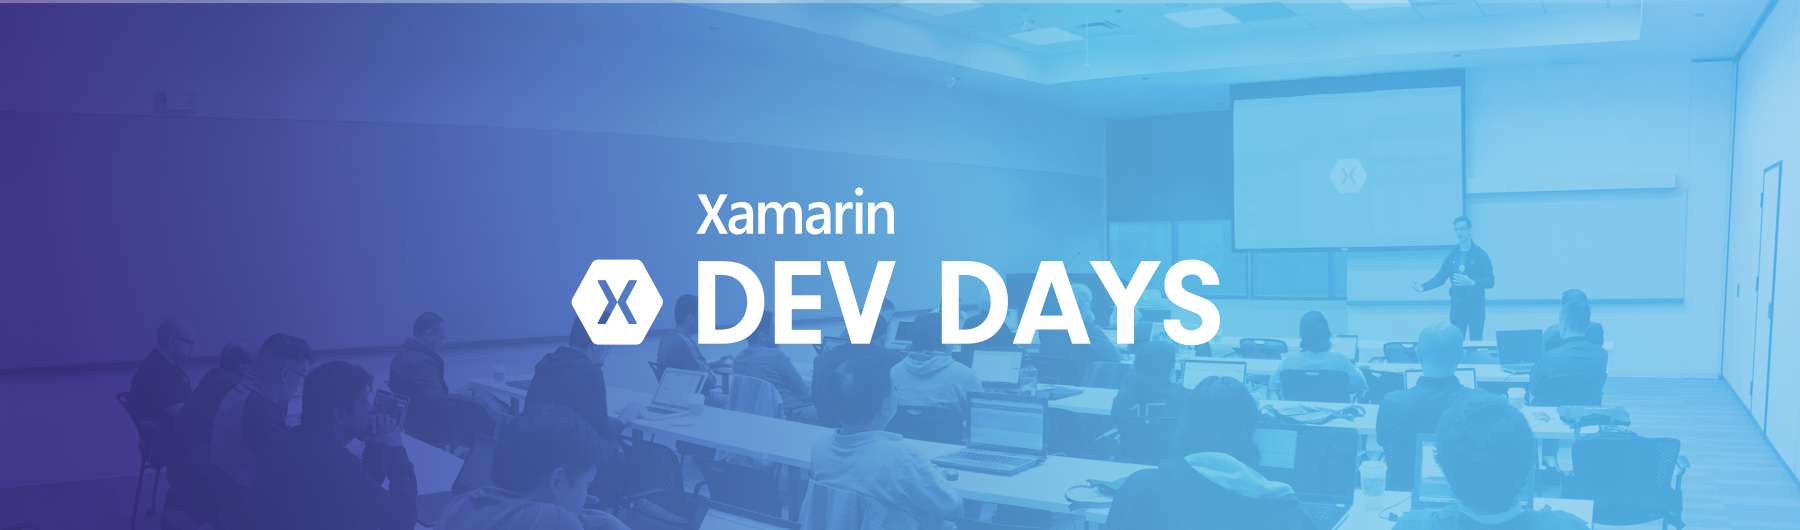 Xamarin Dev Days - Bari